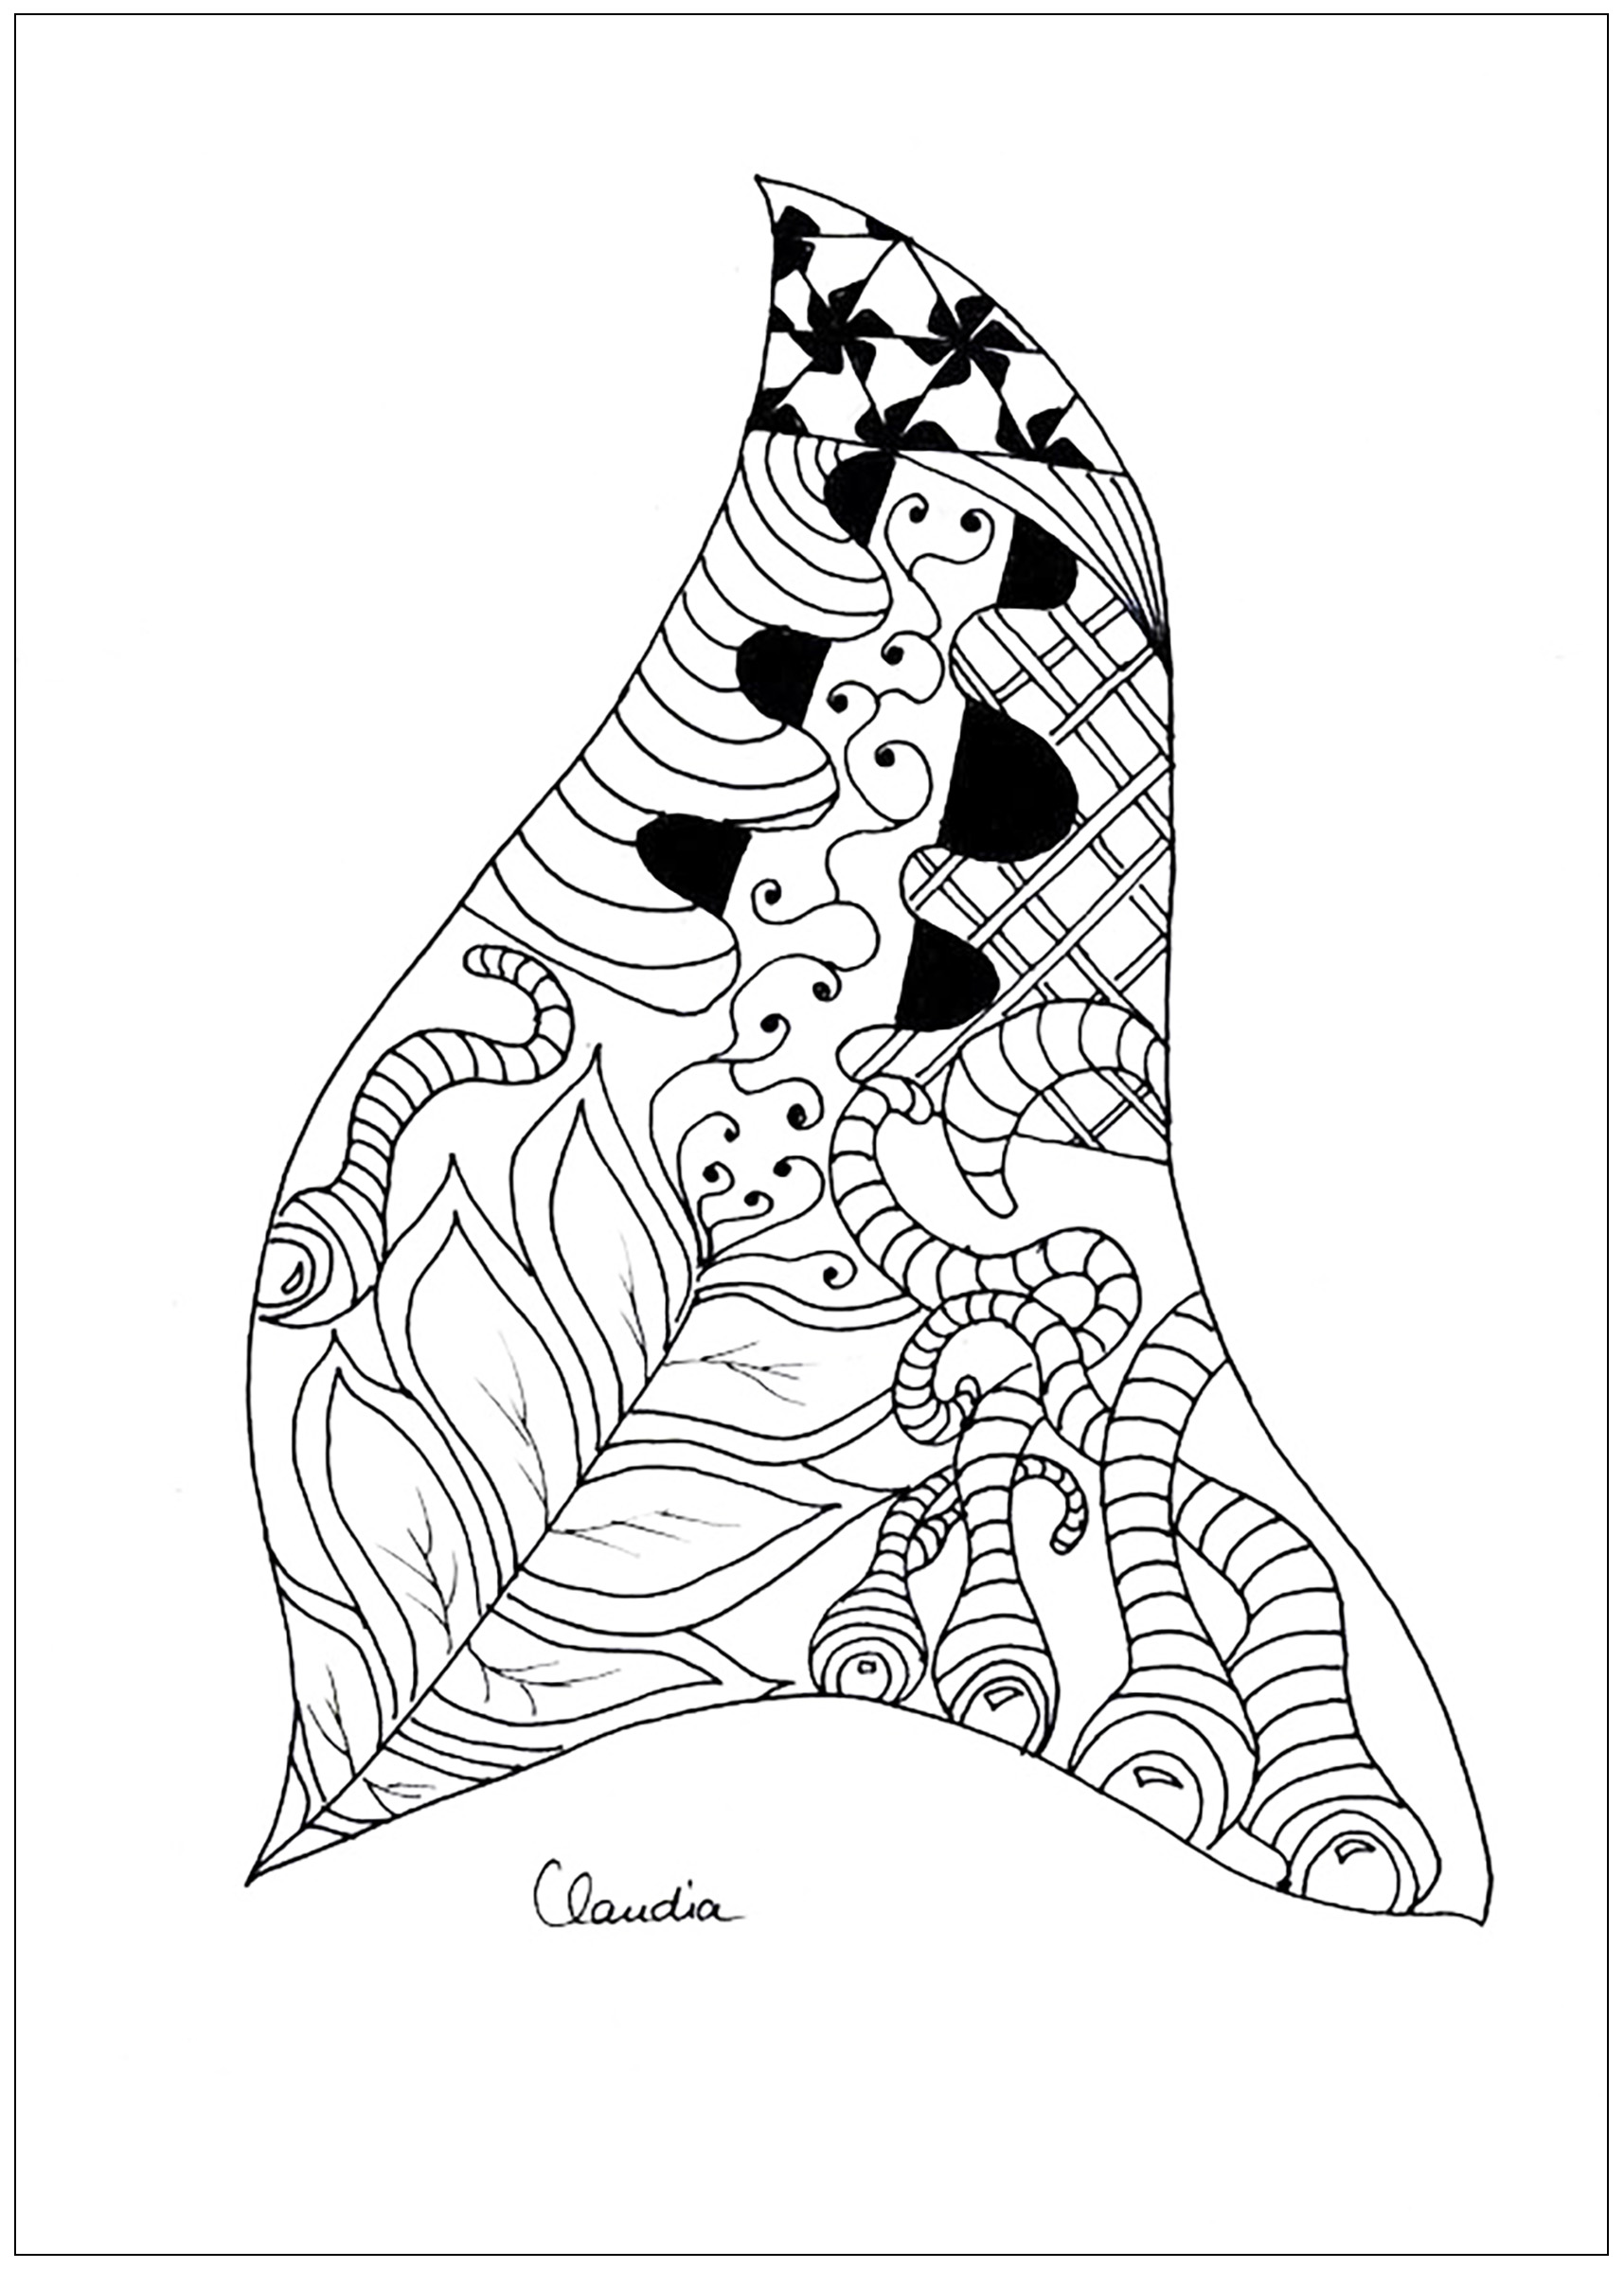 zentangle simple by claudia 2